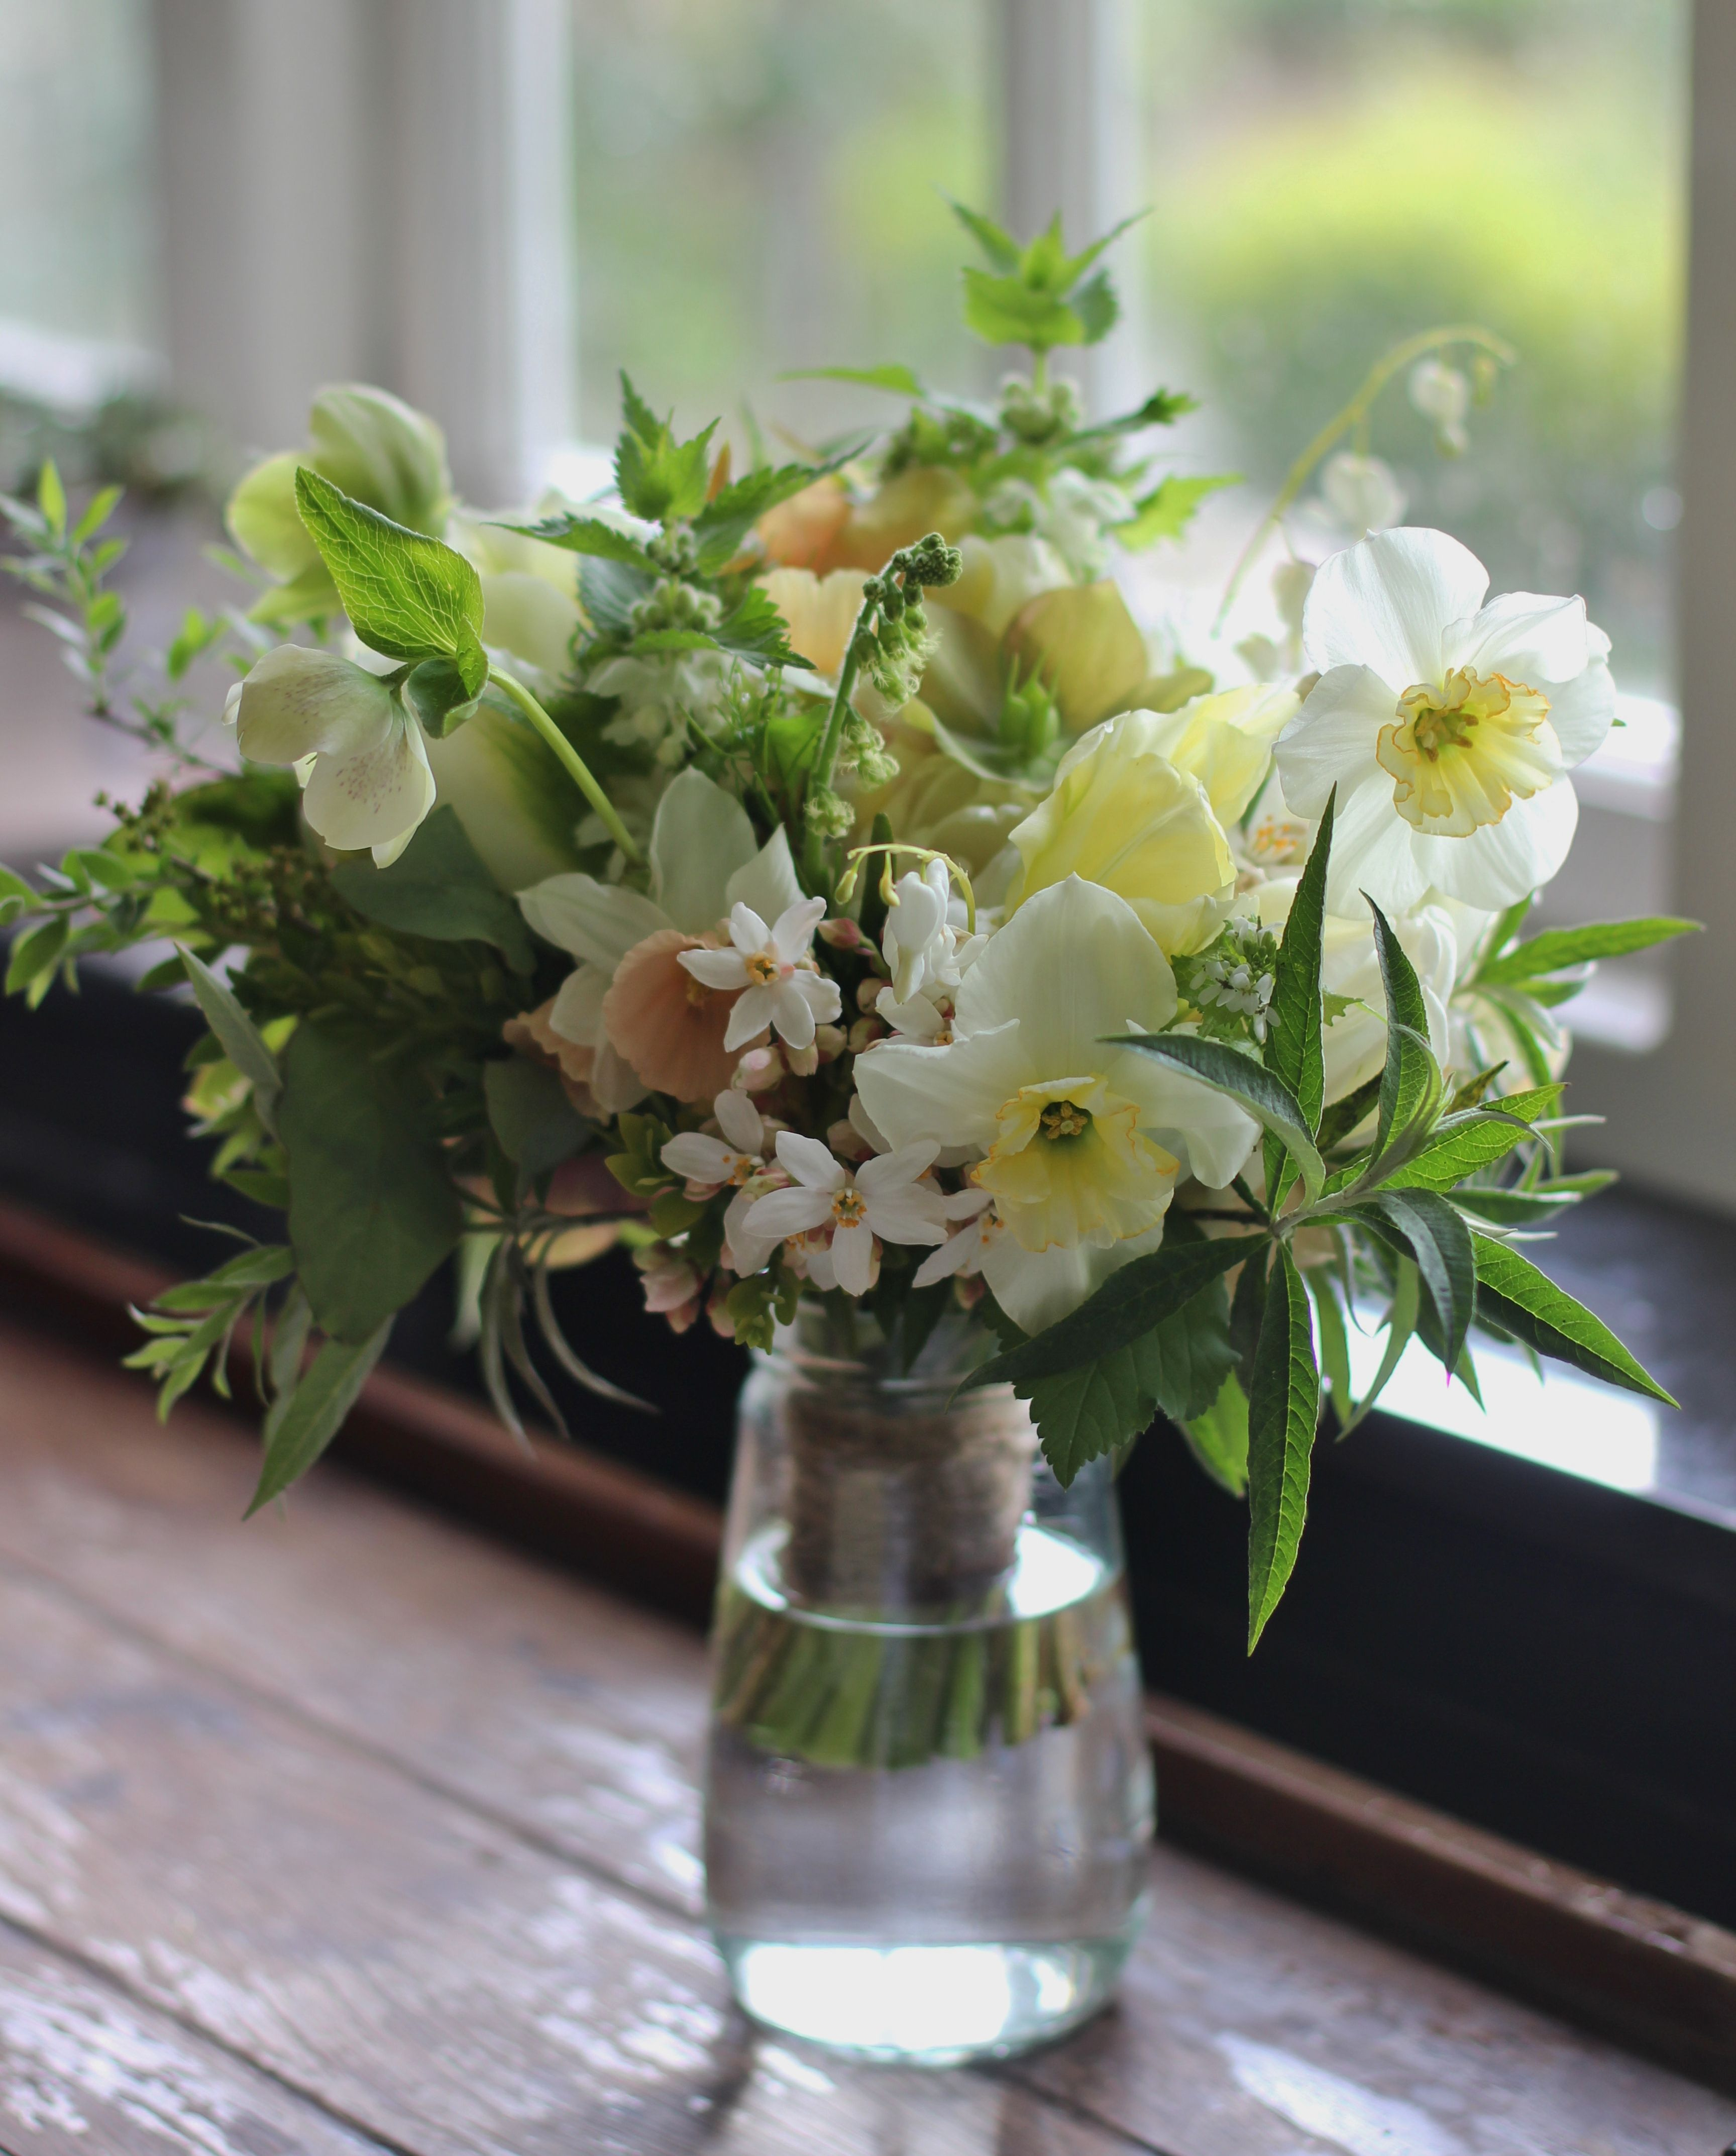 Lock Cottage Flowers Surrey UK Homegrown Spring Wedding Bouquet